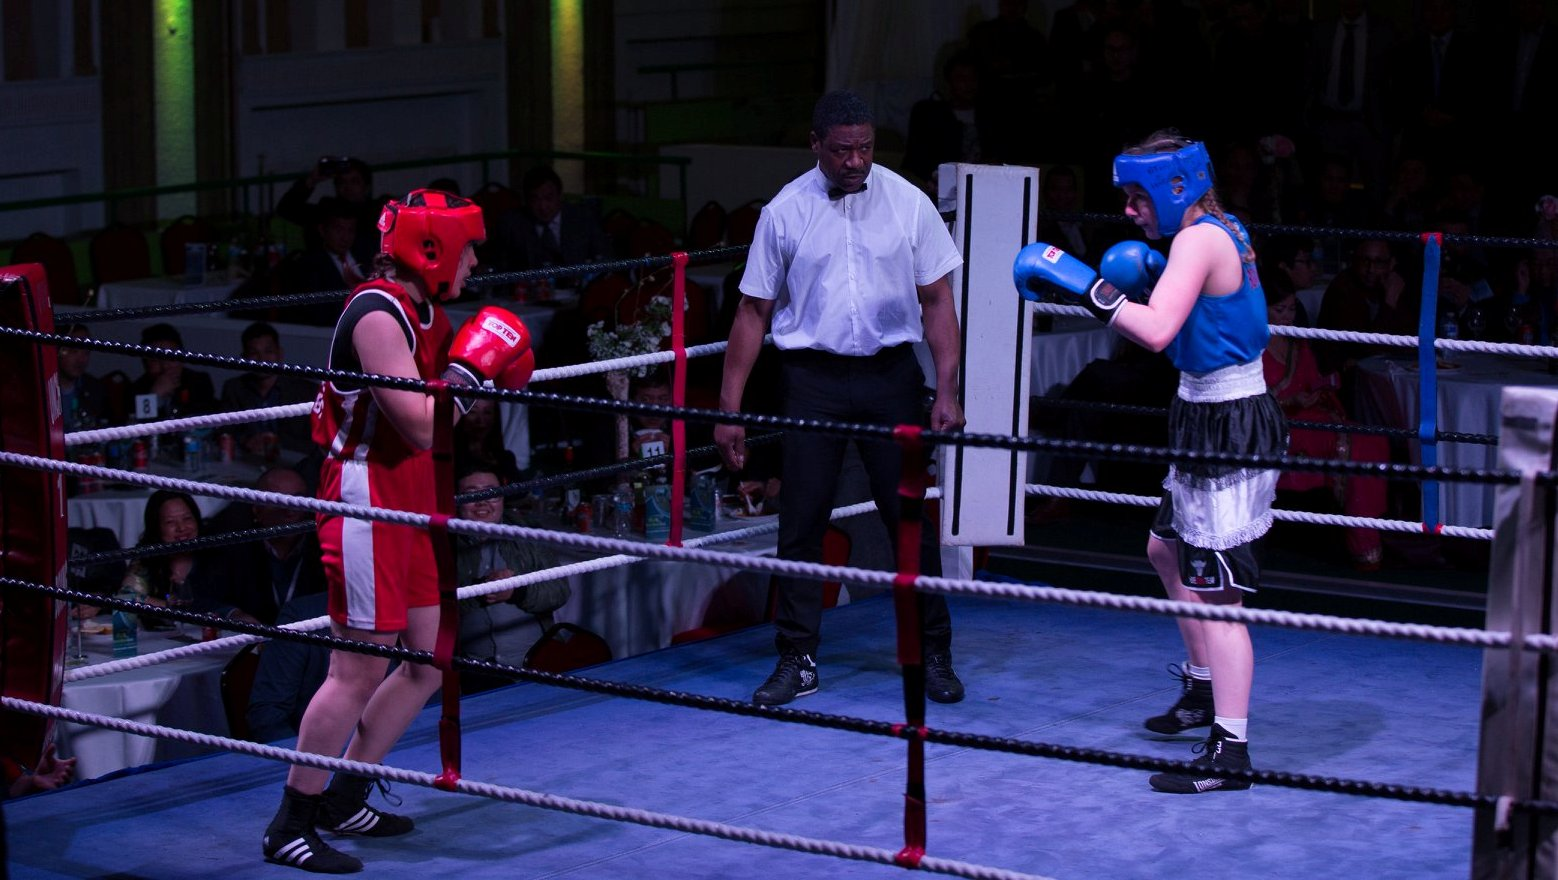 NRNA UK CHARITY DINNER NITE WITH BOXING SHOW 2018